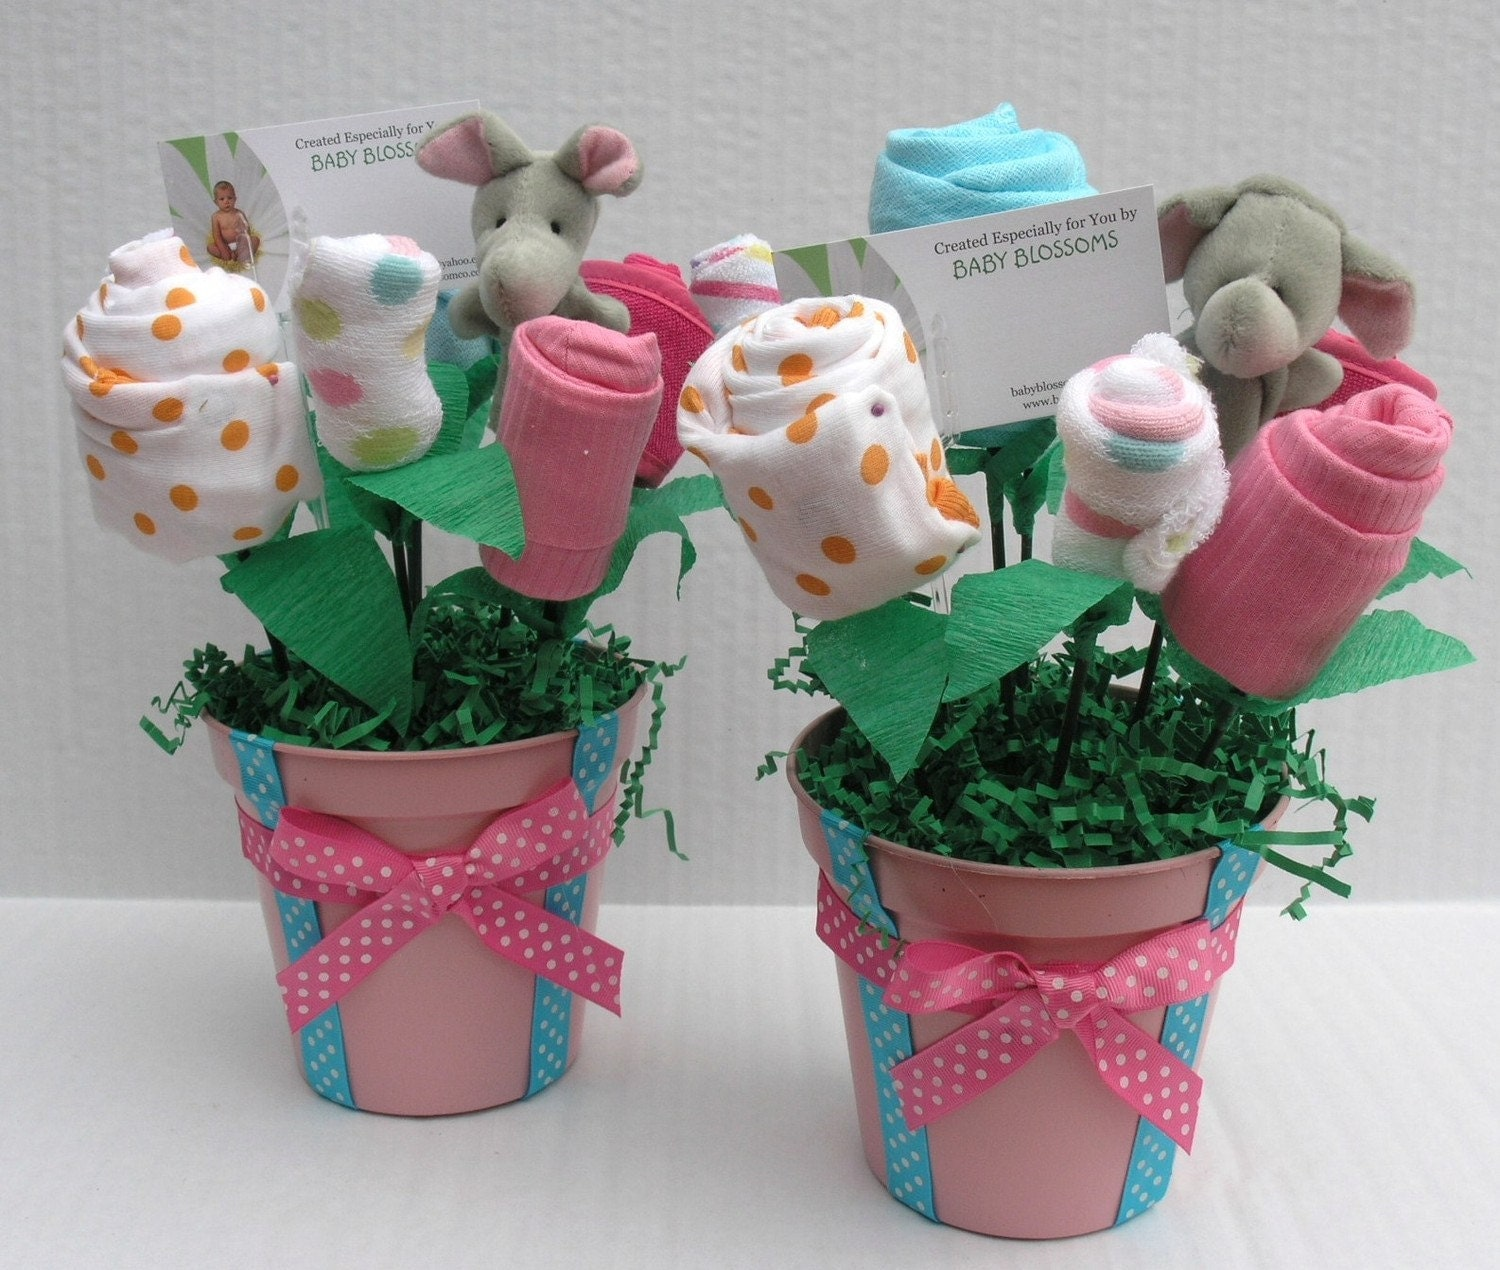 Popular items for baby bouquet set on Etsy